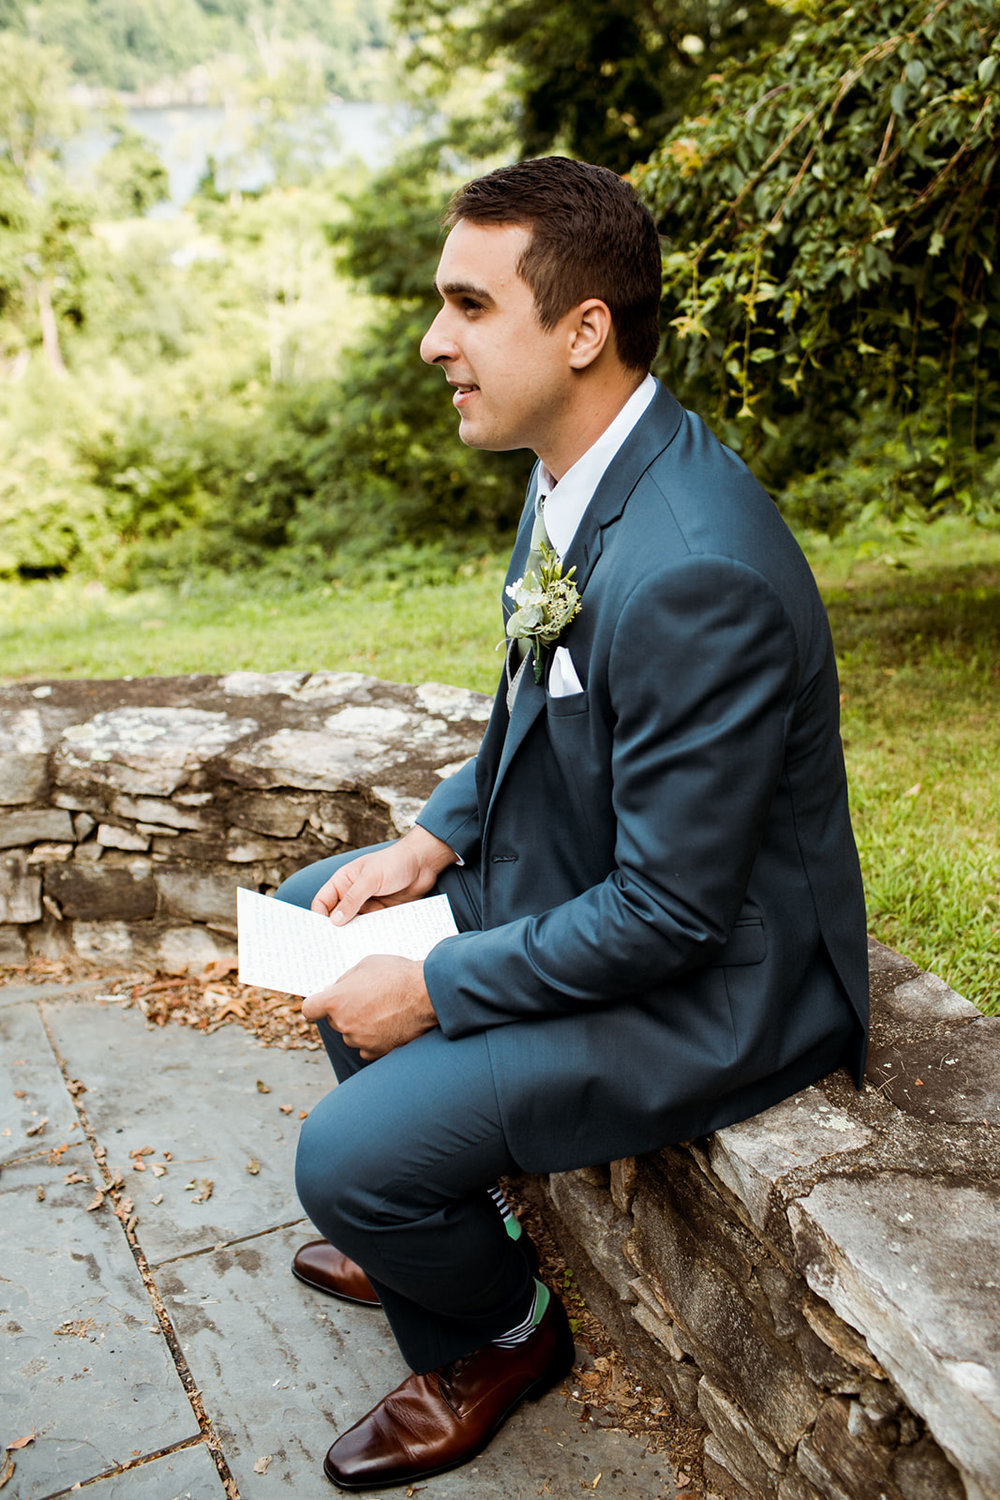 Groom reading his note from his bride - Pearl Weddings & Events